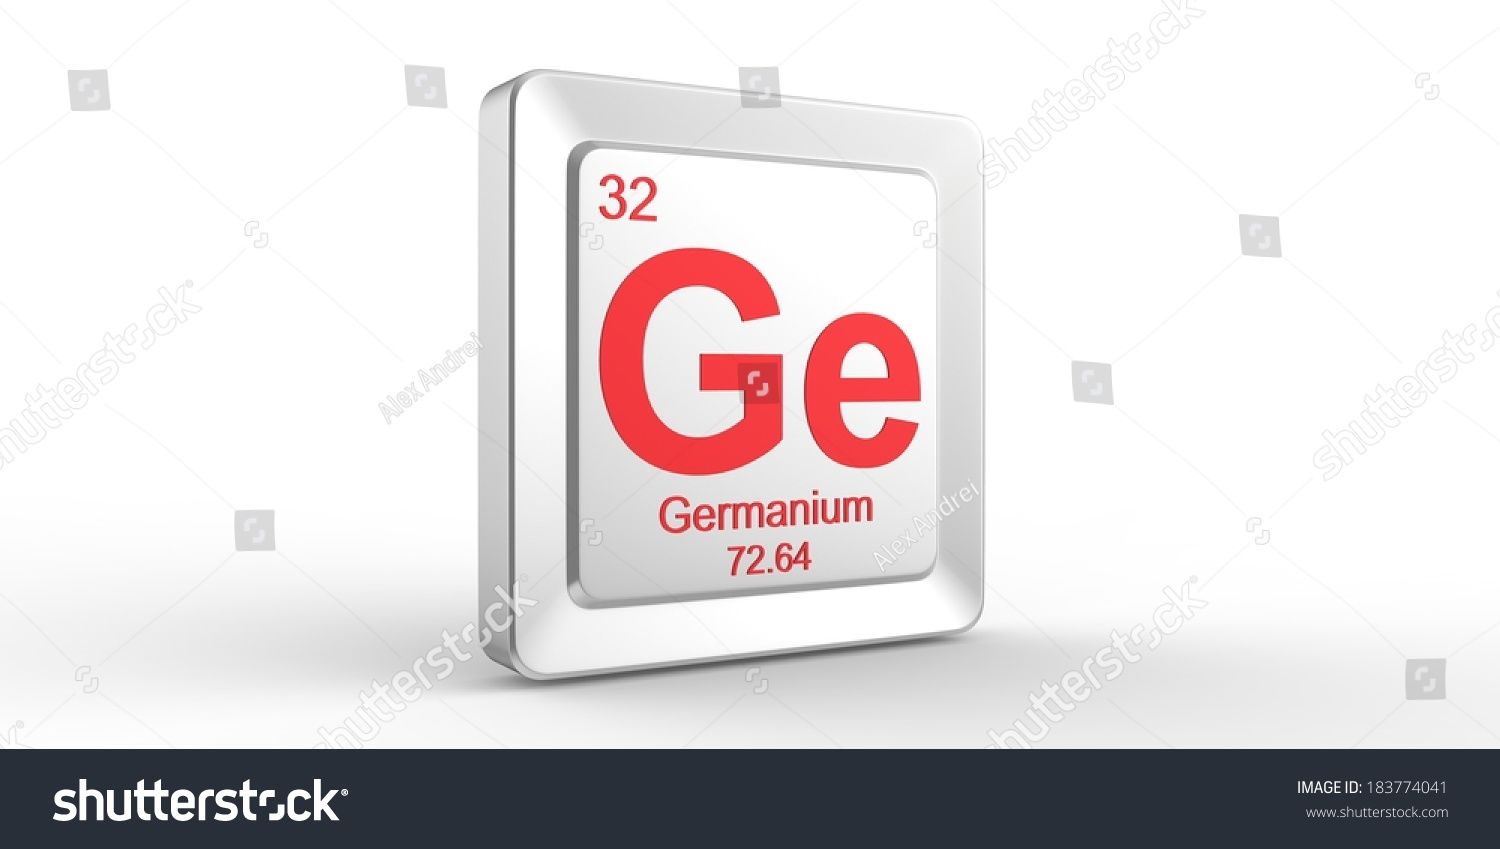 Ge symbol 32 material germanium chemical stock illustration ge symbol 32 material for germanium chemical element of the periodic table gamestrikefo Image collections